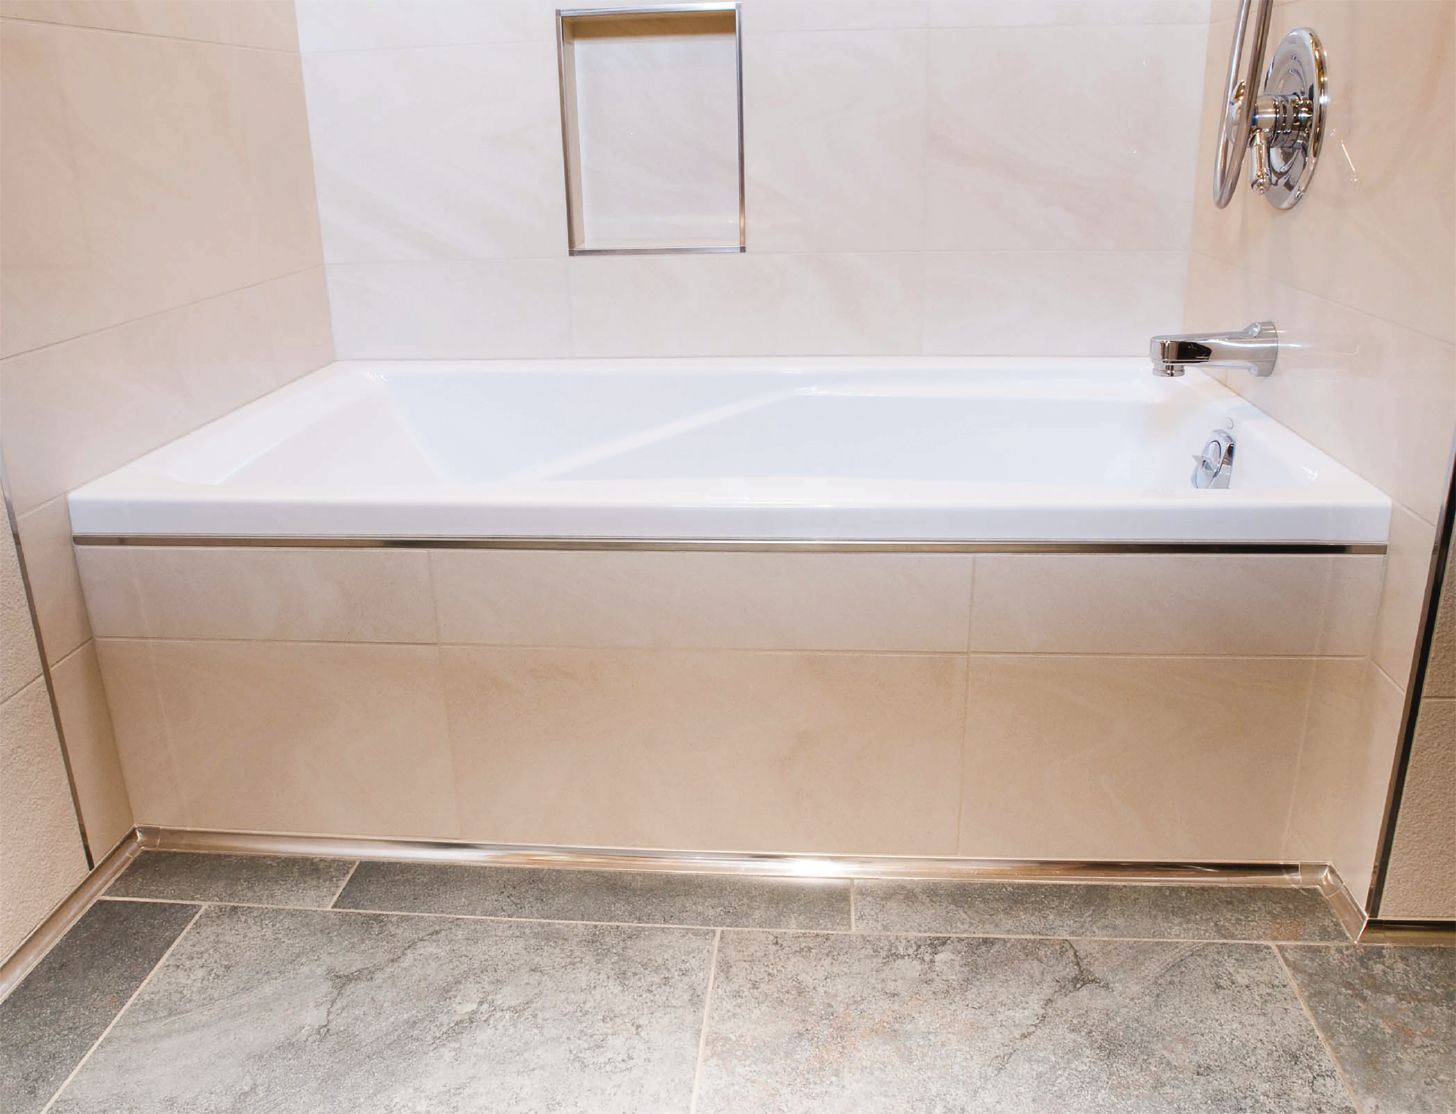 Applied To The Tile Edges Of The Bathtub Skirting And Wall Tile